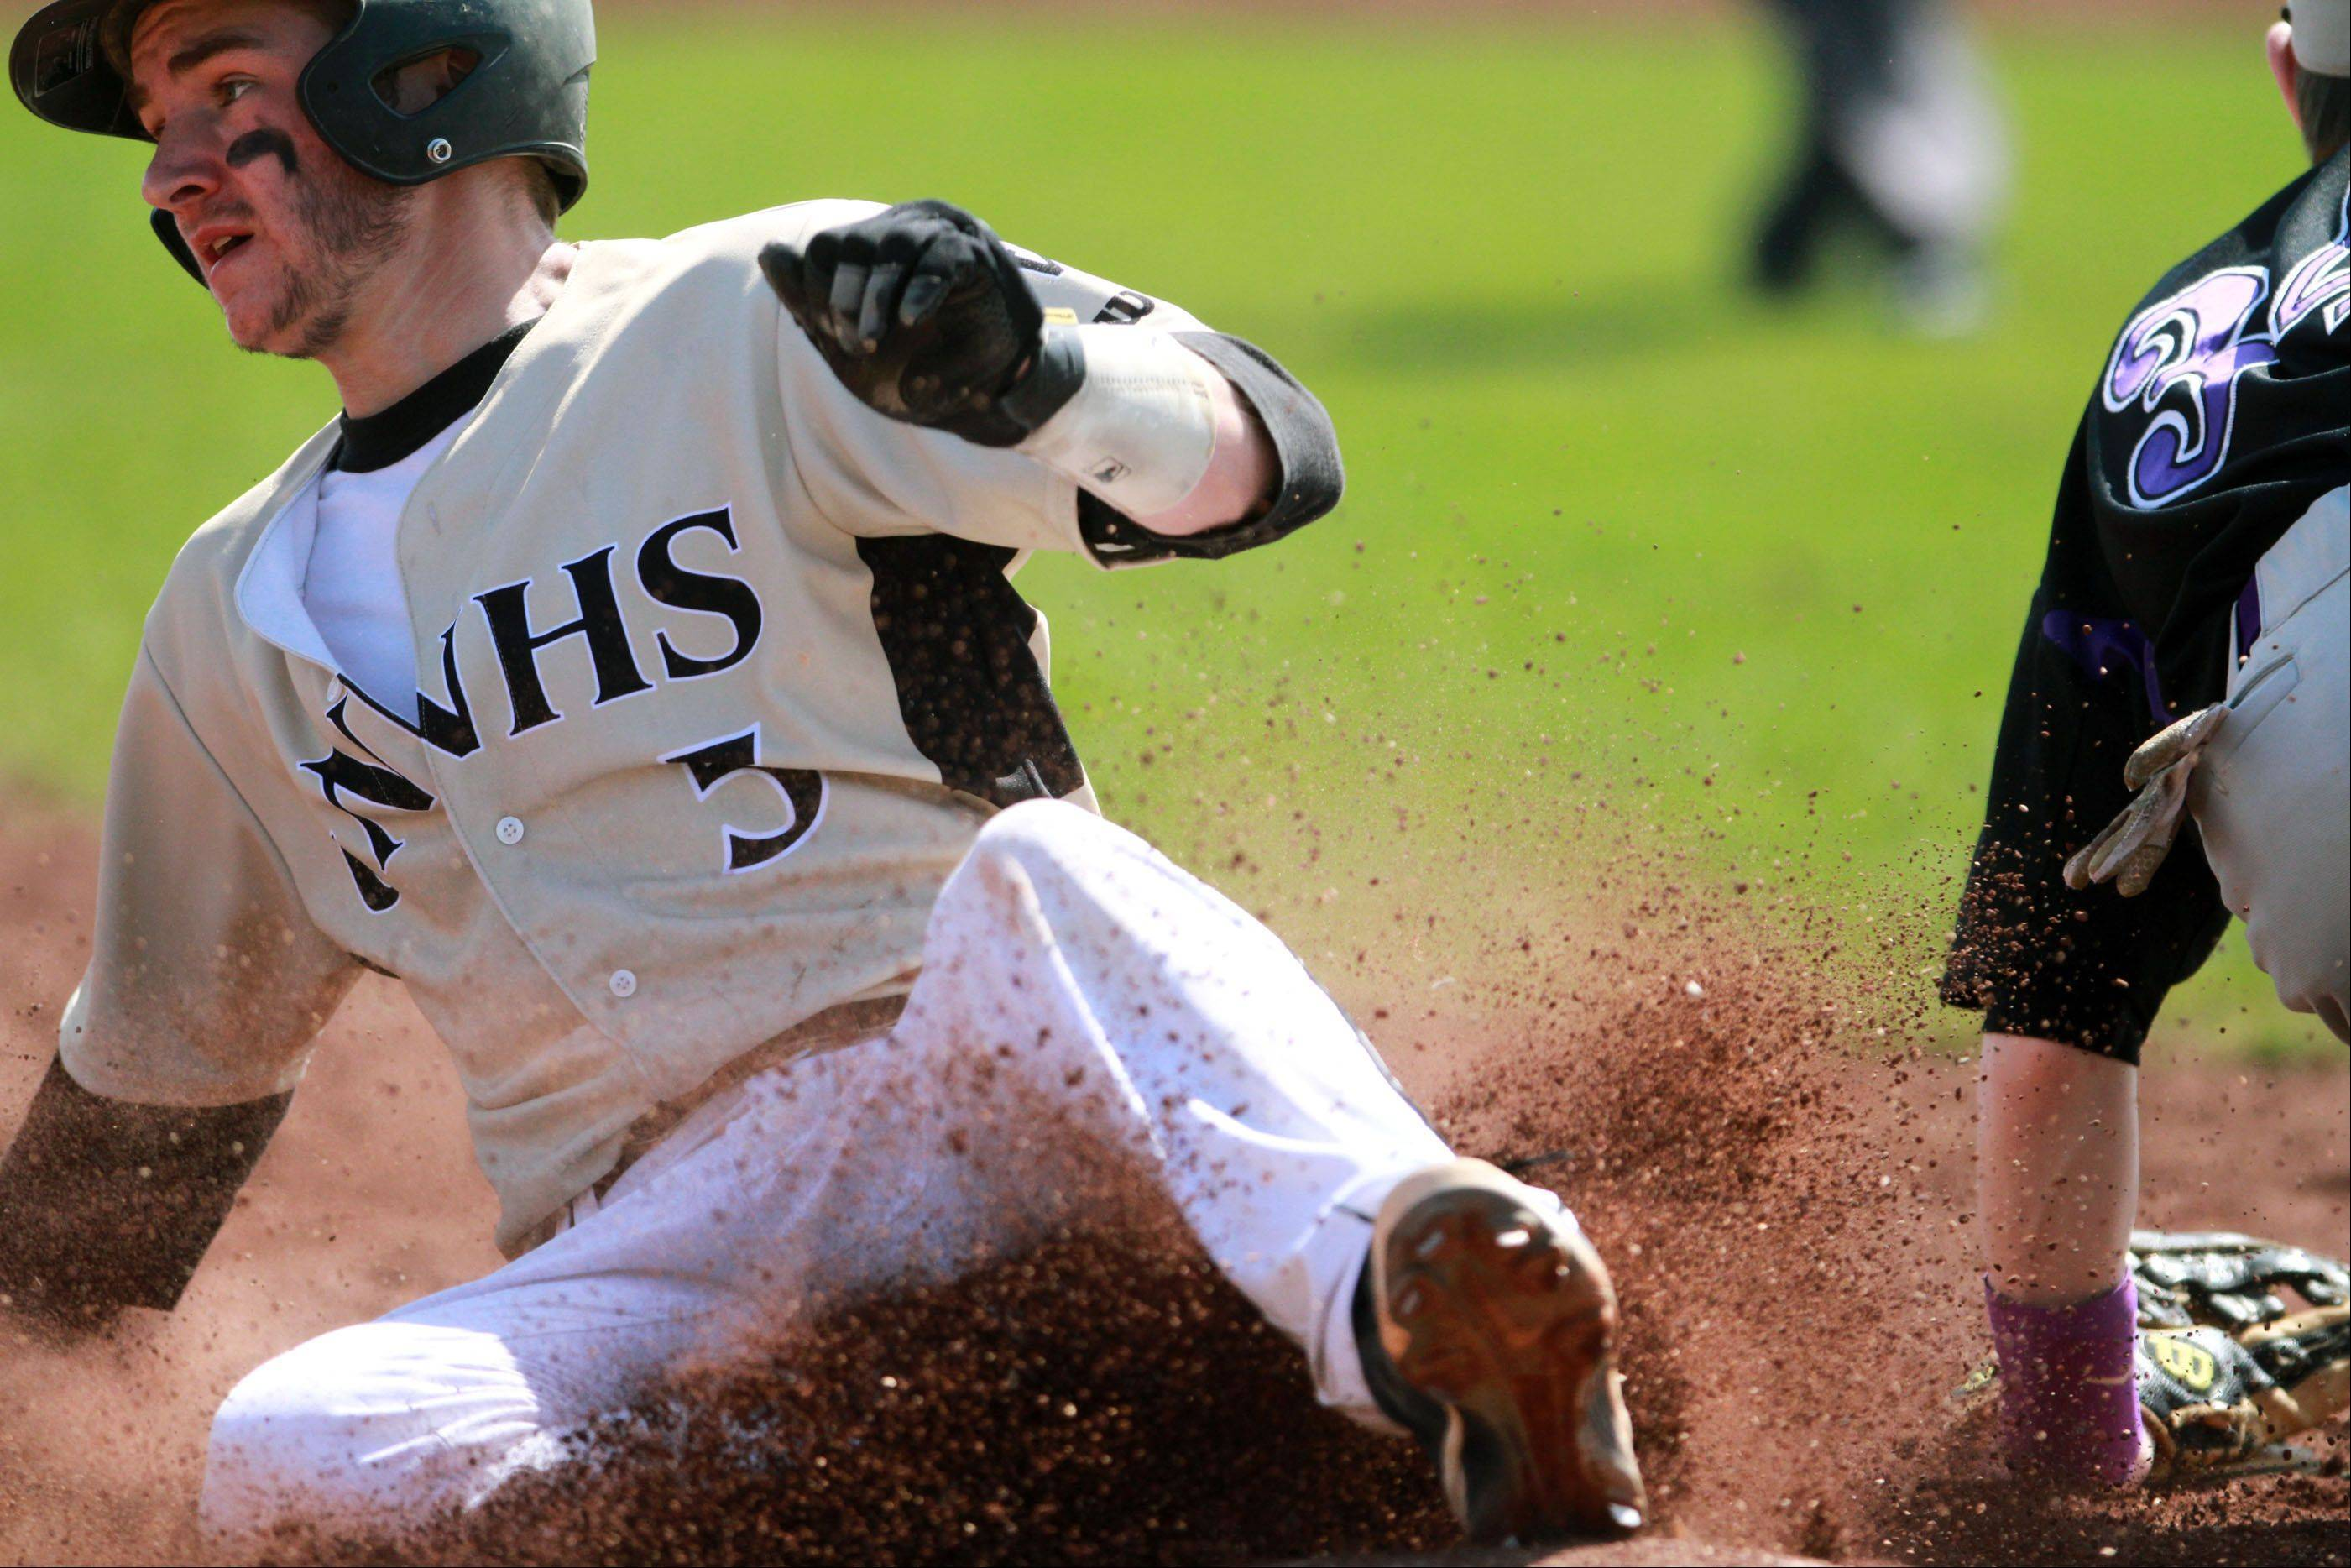 Grayslake North shortstop Carl Russell is safe at third base as Hampshire's RJ Consigny waits for the throw at Grayslake North on Saturday. Russell ended up scoring on a hit.